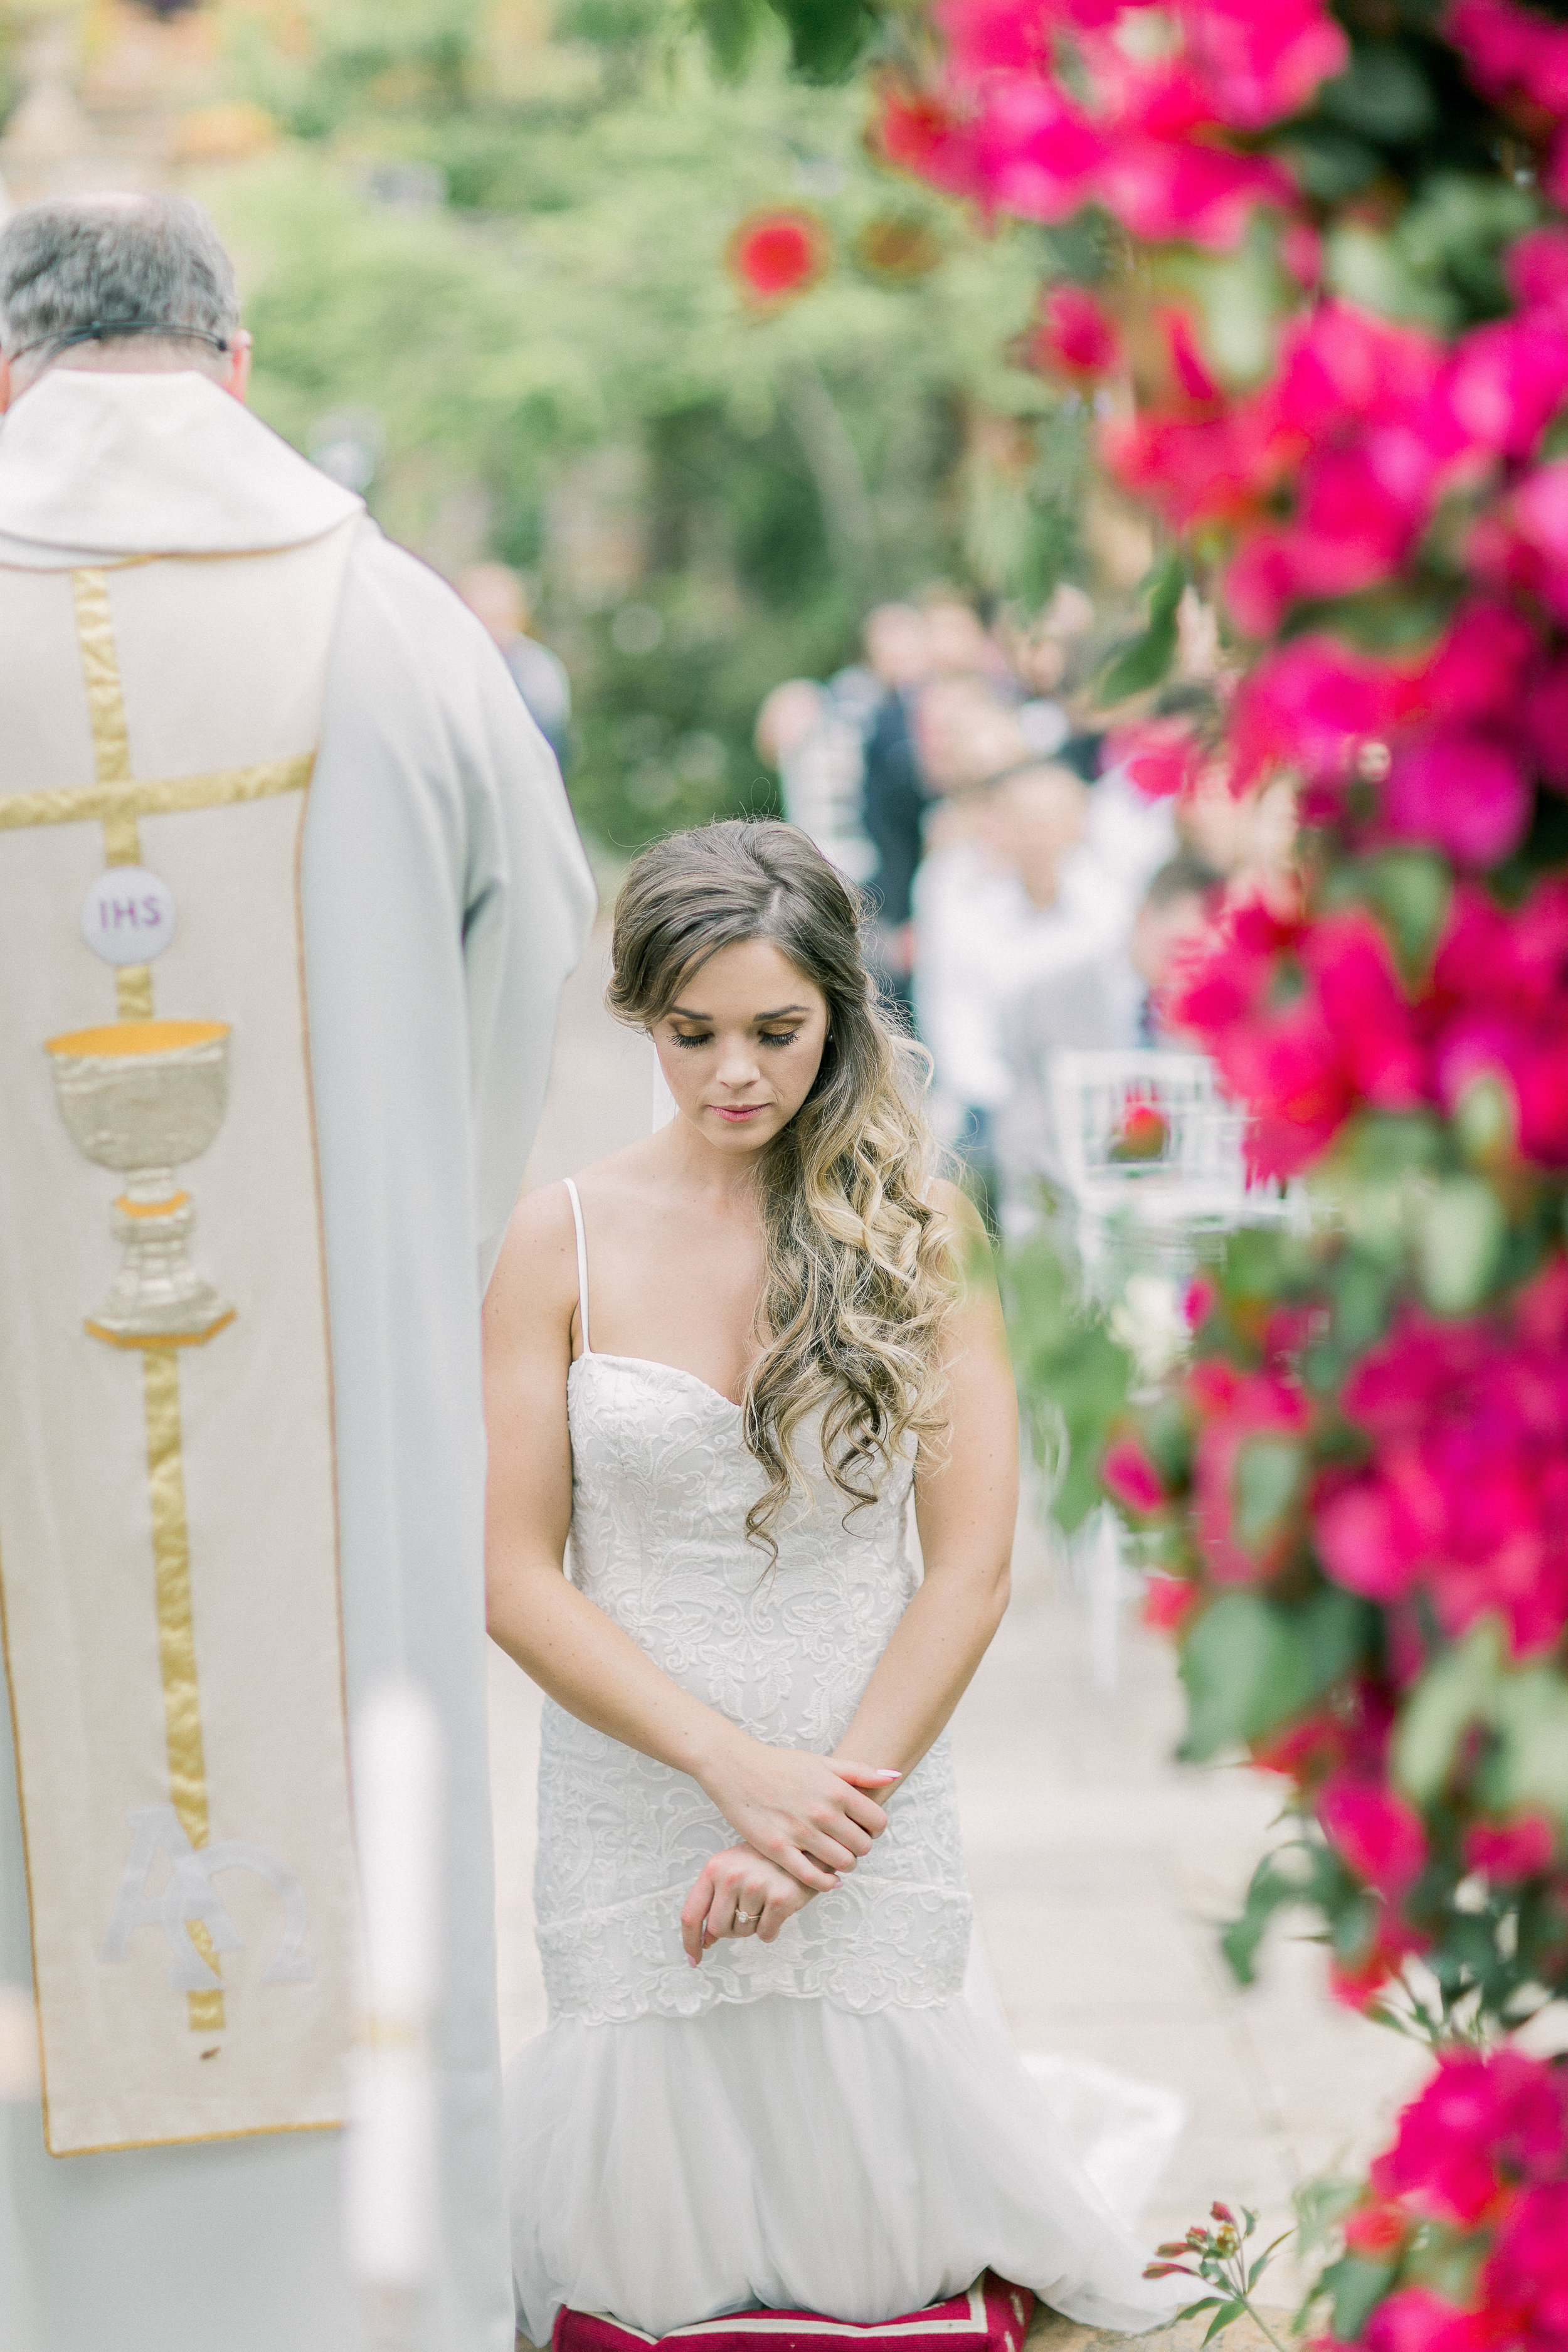 South africa wedding photographer clareece smit photography53.jpg